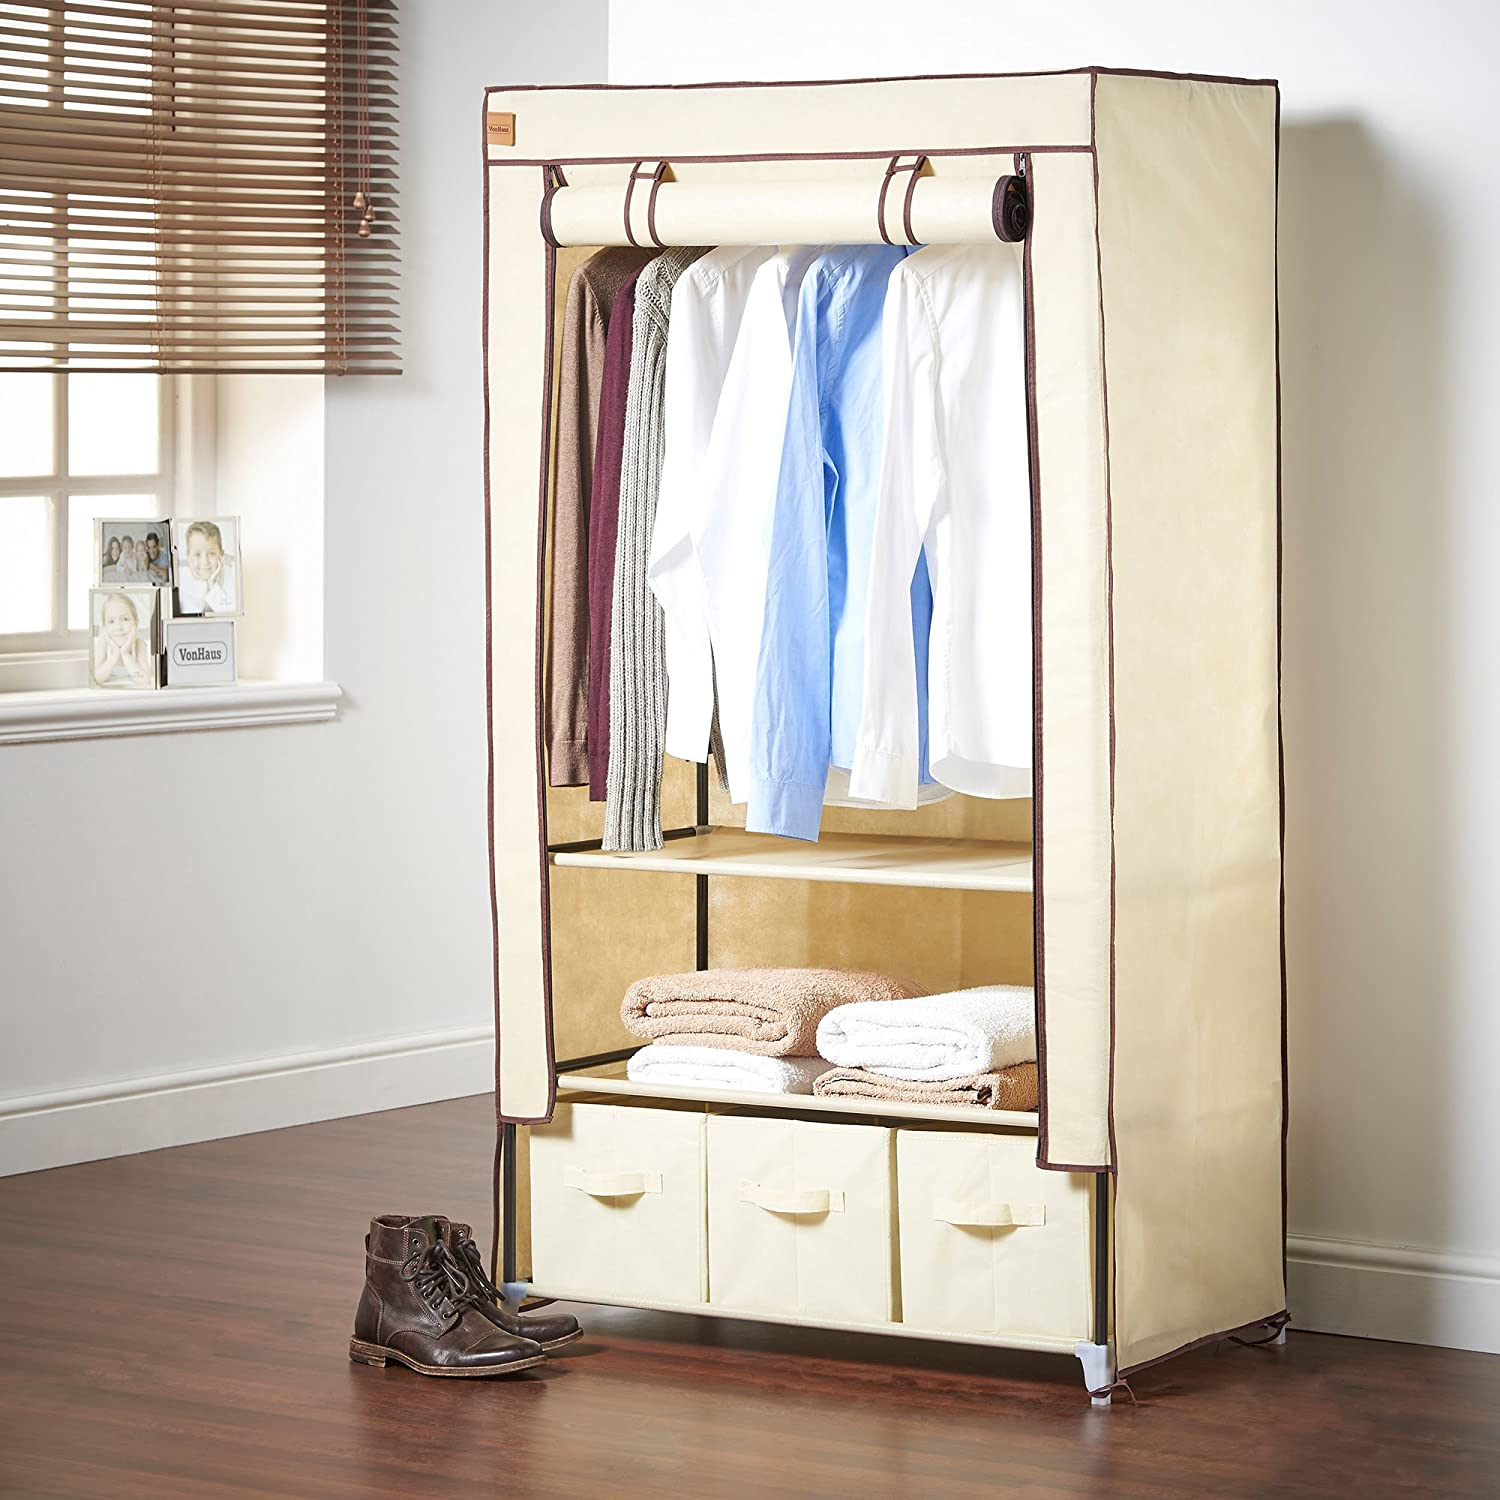 VonHaus Double Canvas Effect Wardrobe